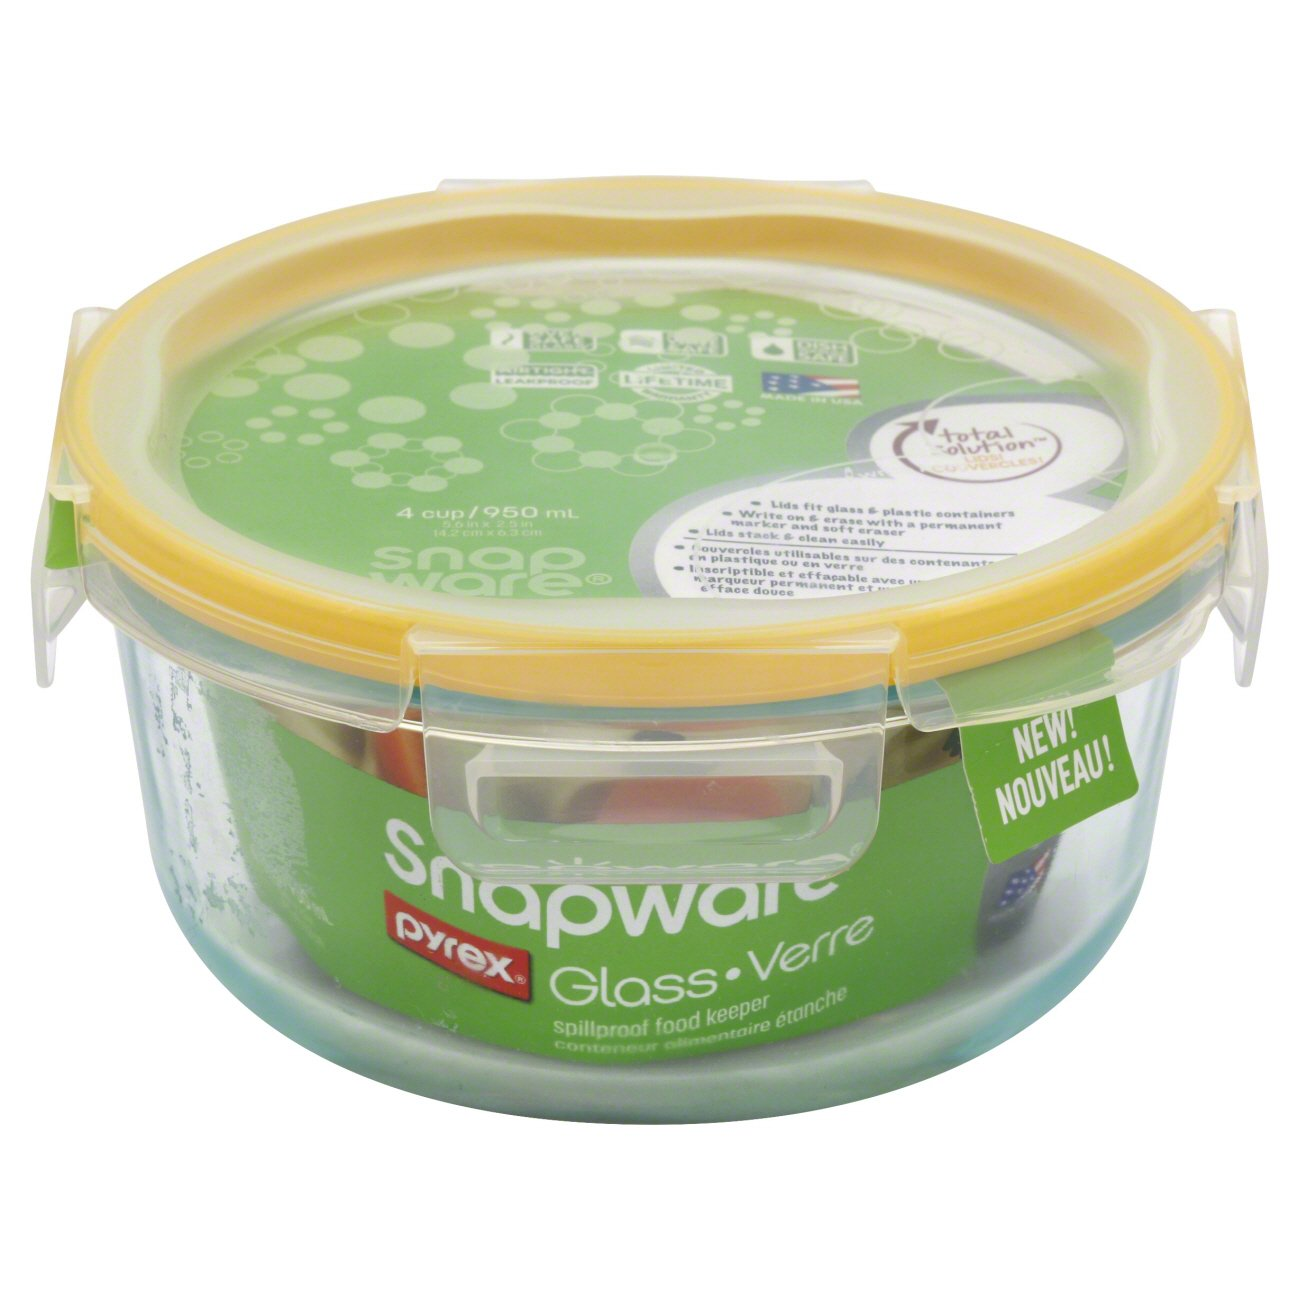 Snapware Medium Round Glass Food Storage Container Shop Containers